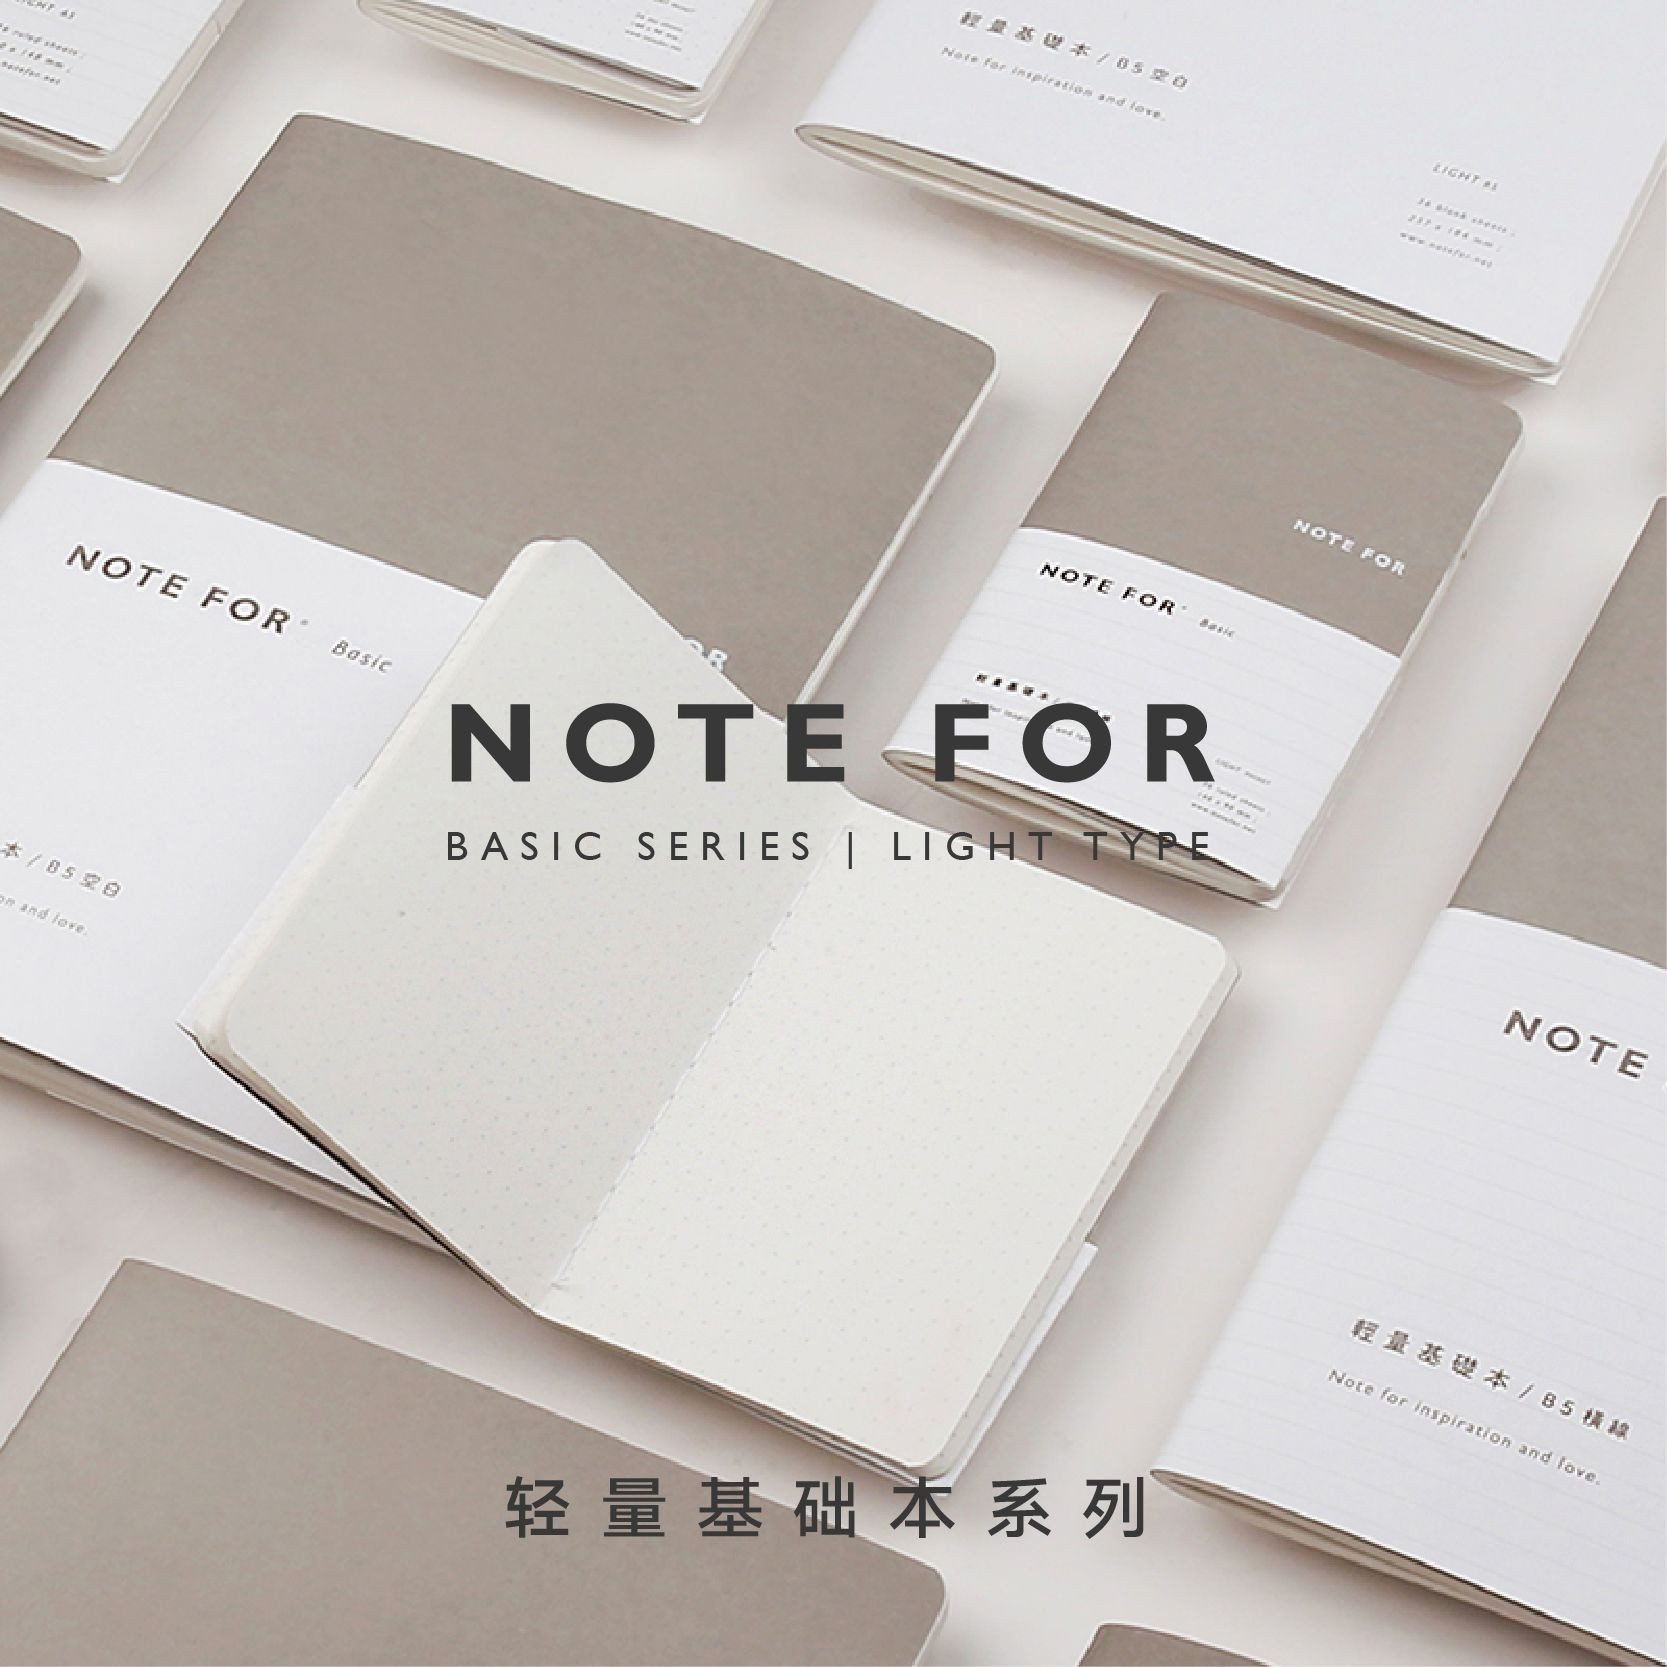 A5 Soft Copybook Stitching Notebook Composition Book Daily Memos for Bullet Journal Student School Office Supplies bz1710018 a5 b5 spiral cute notebook new school stationery horizontal page daily memos top quality paper school supplies composition book